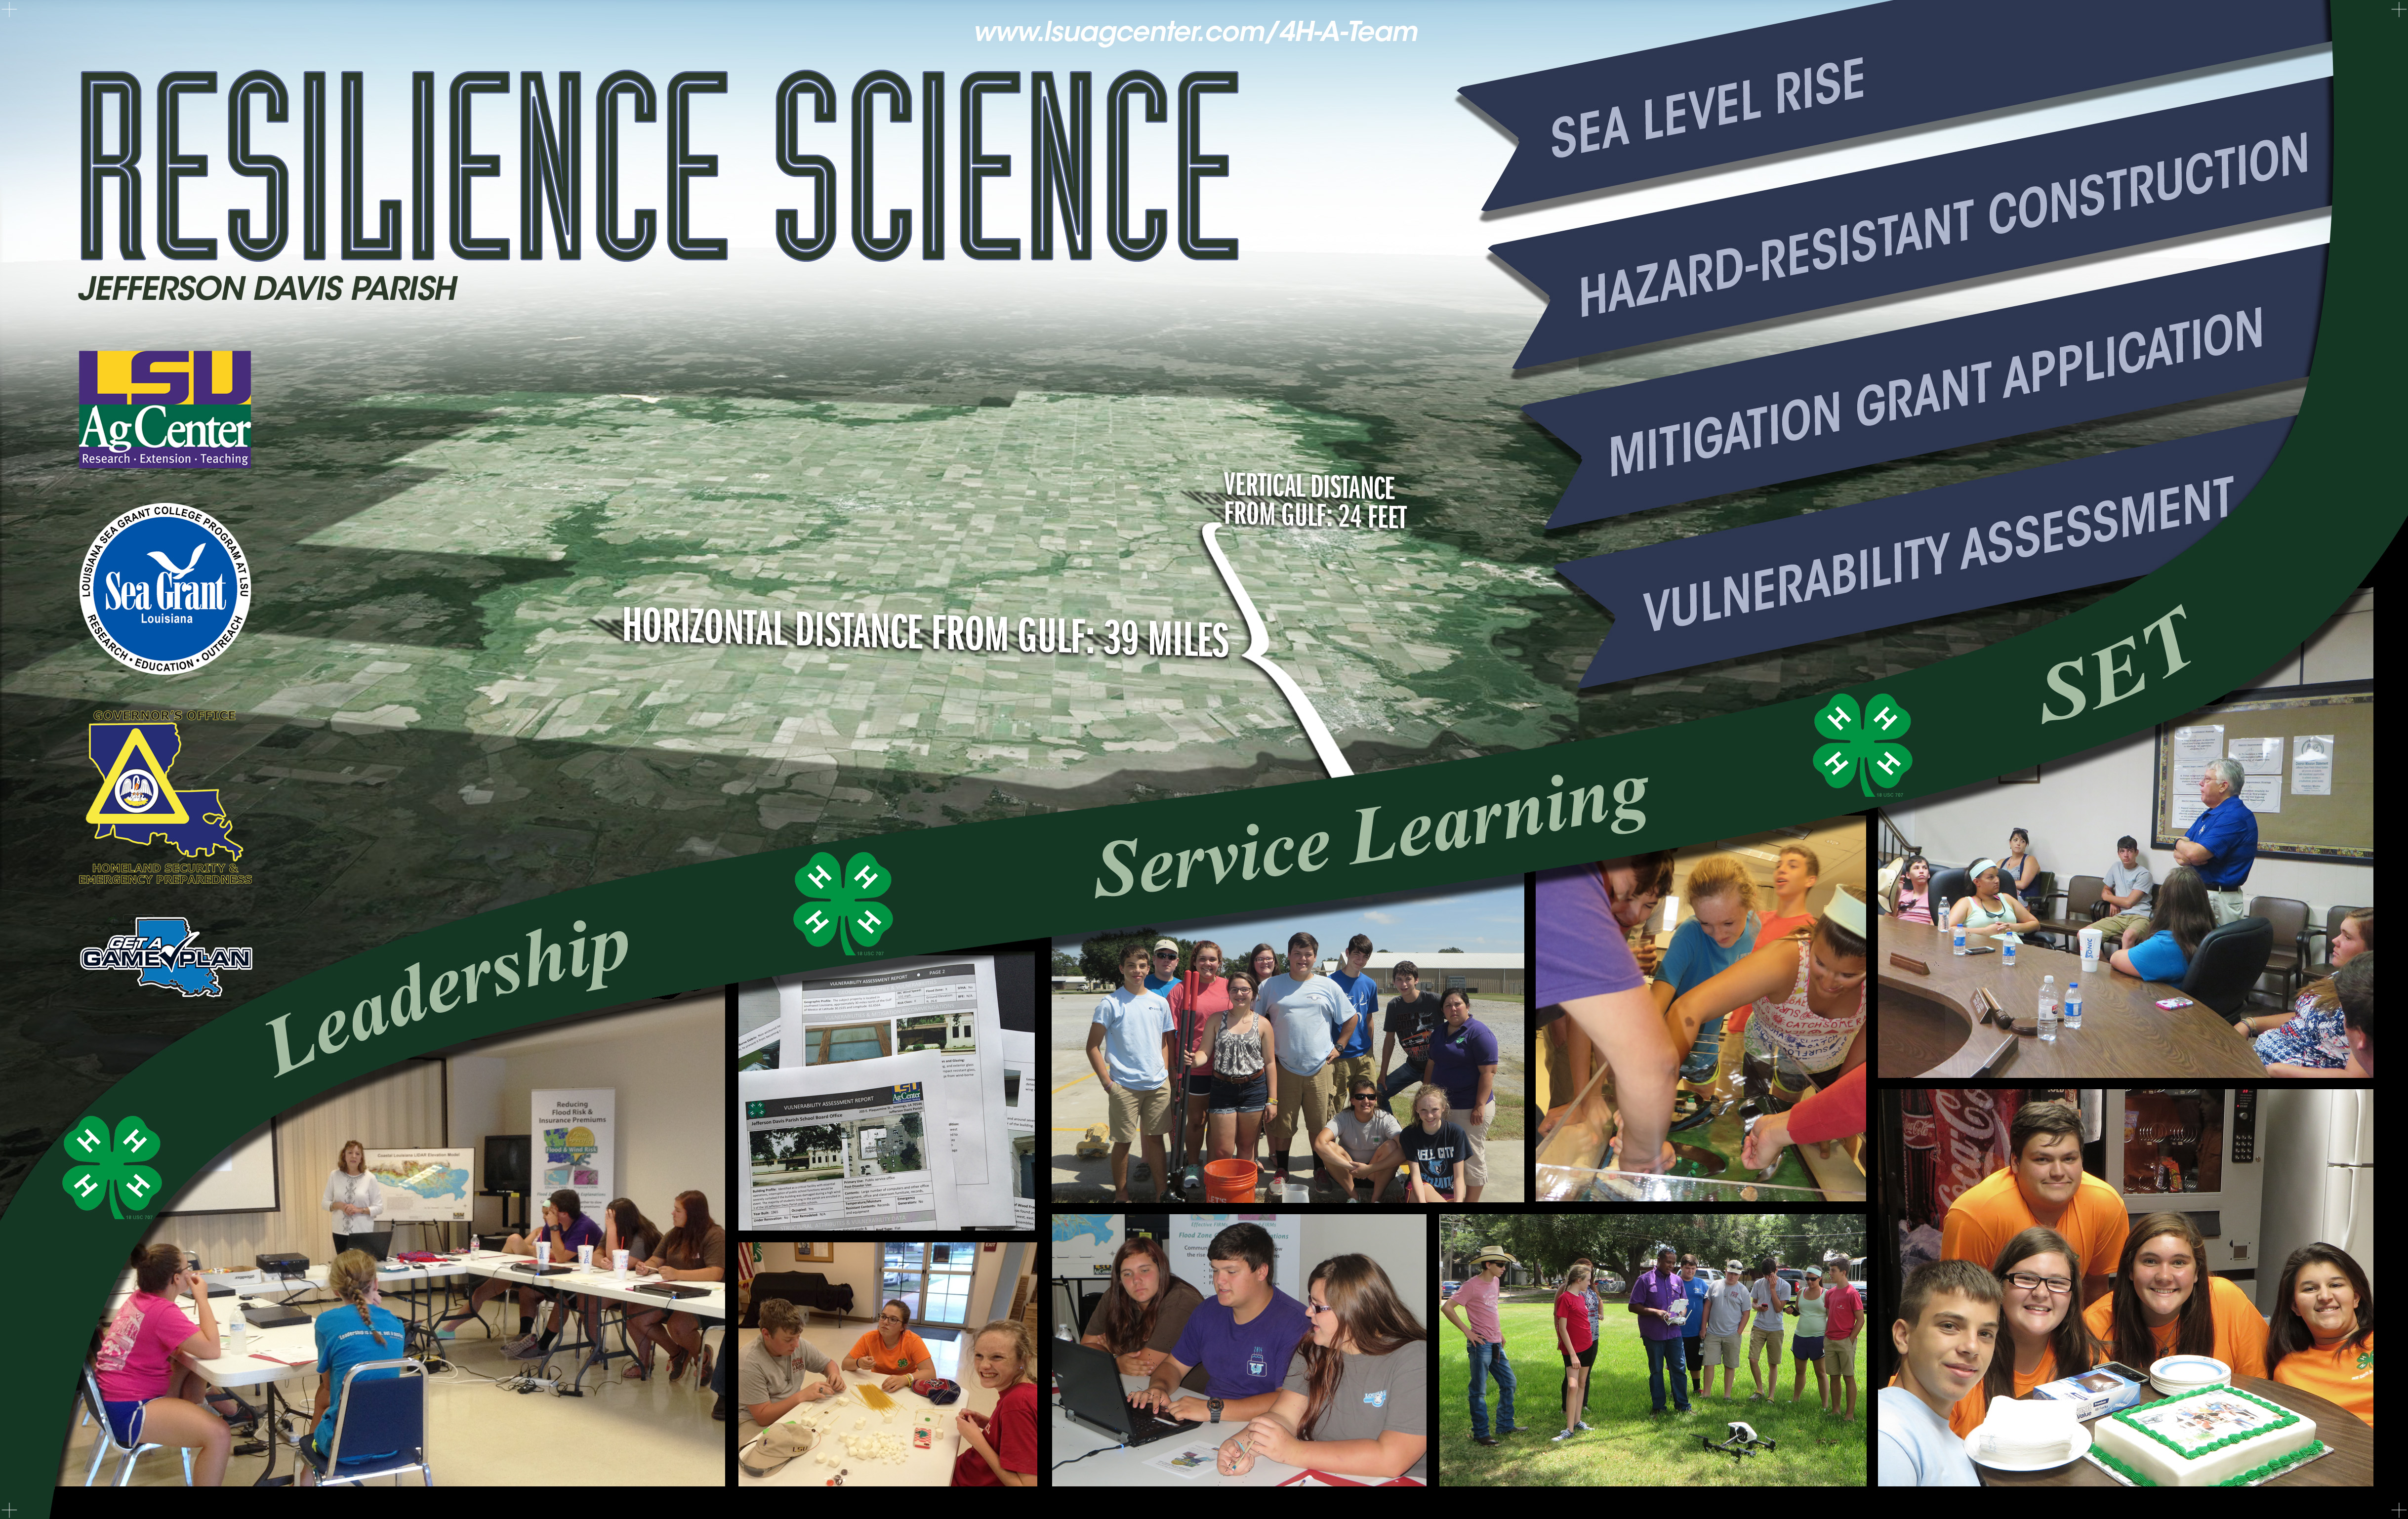 resilience science jeff davis team posterjpg